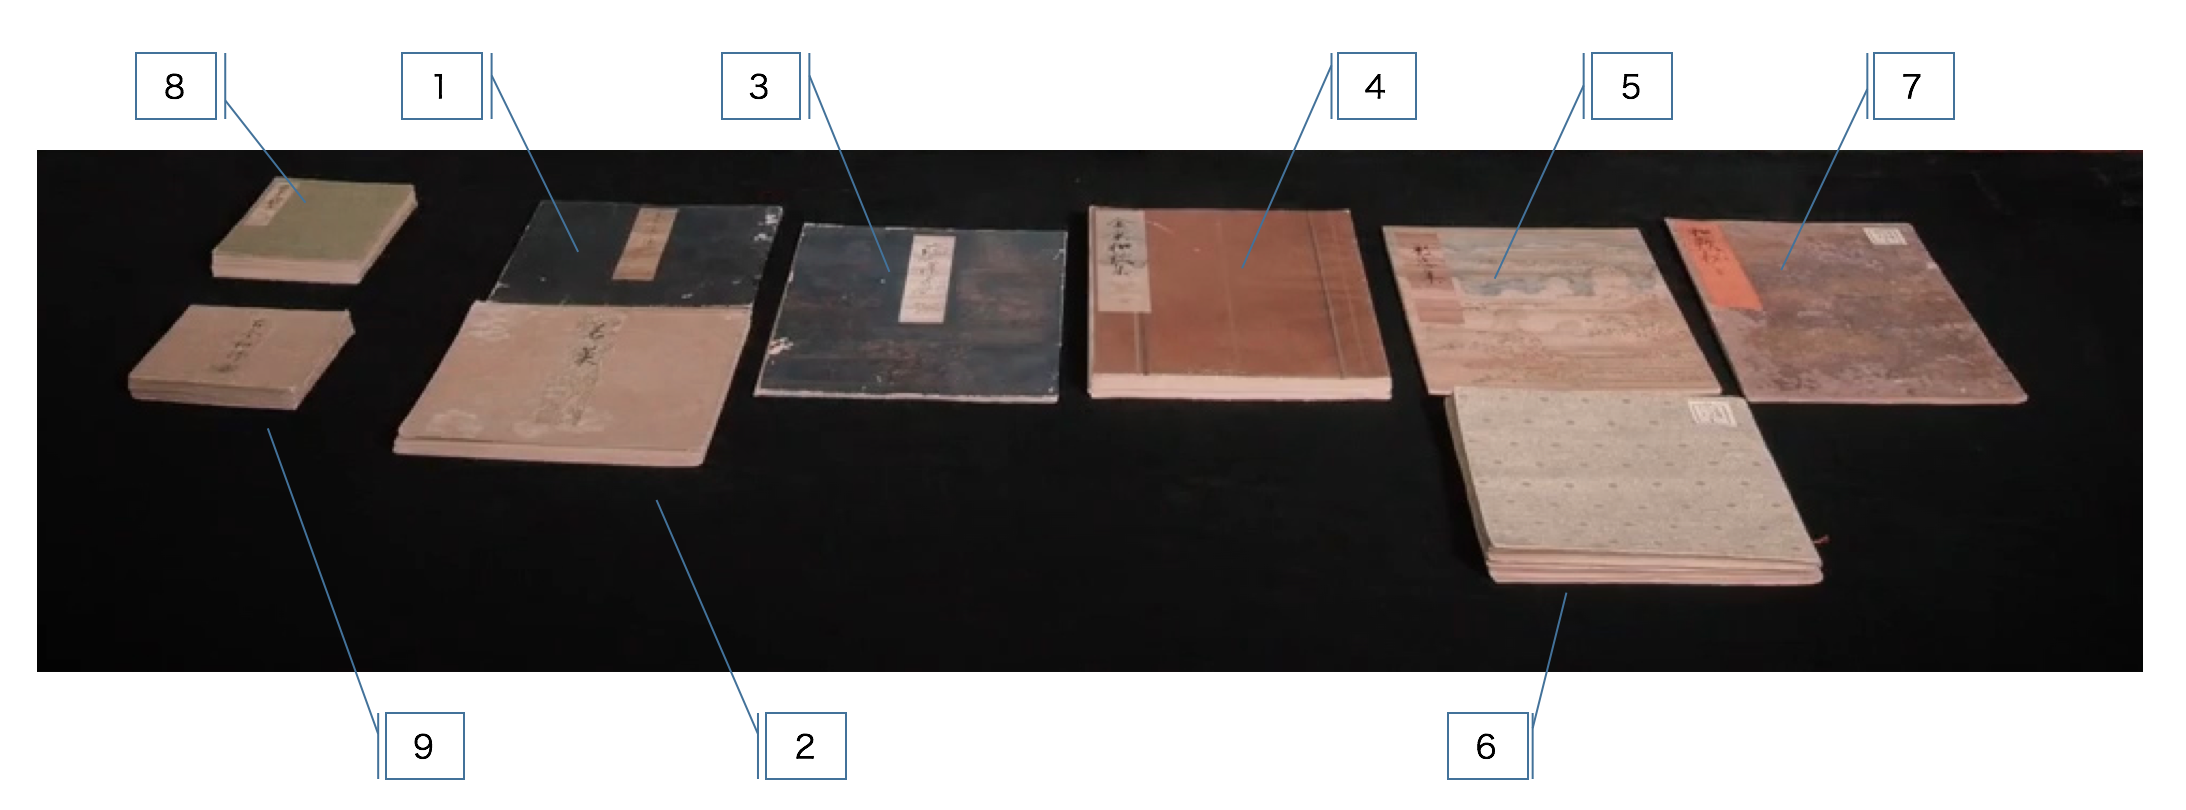 books in the video